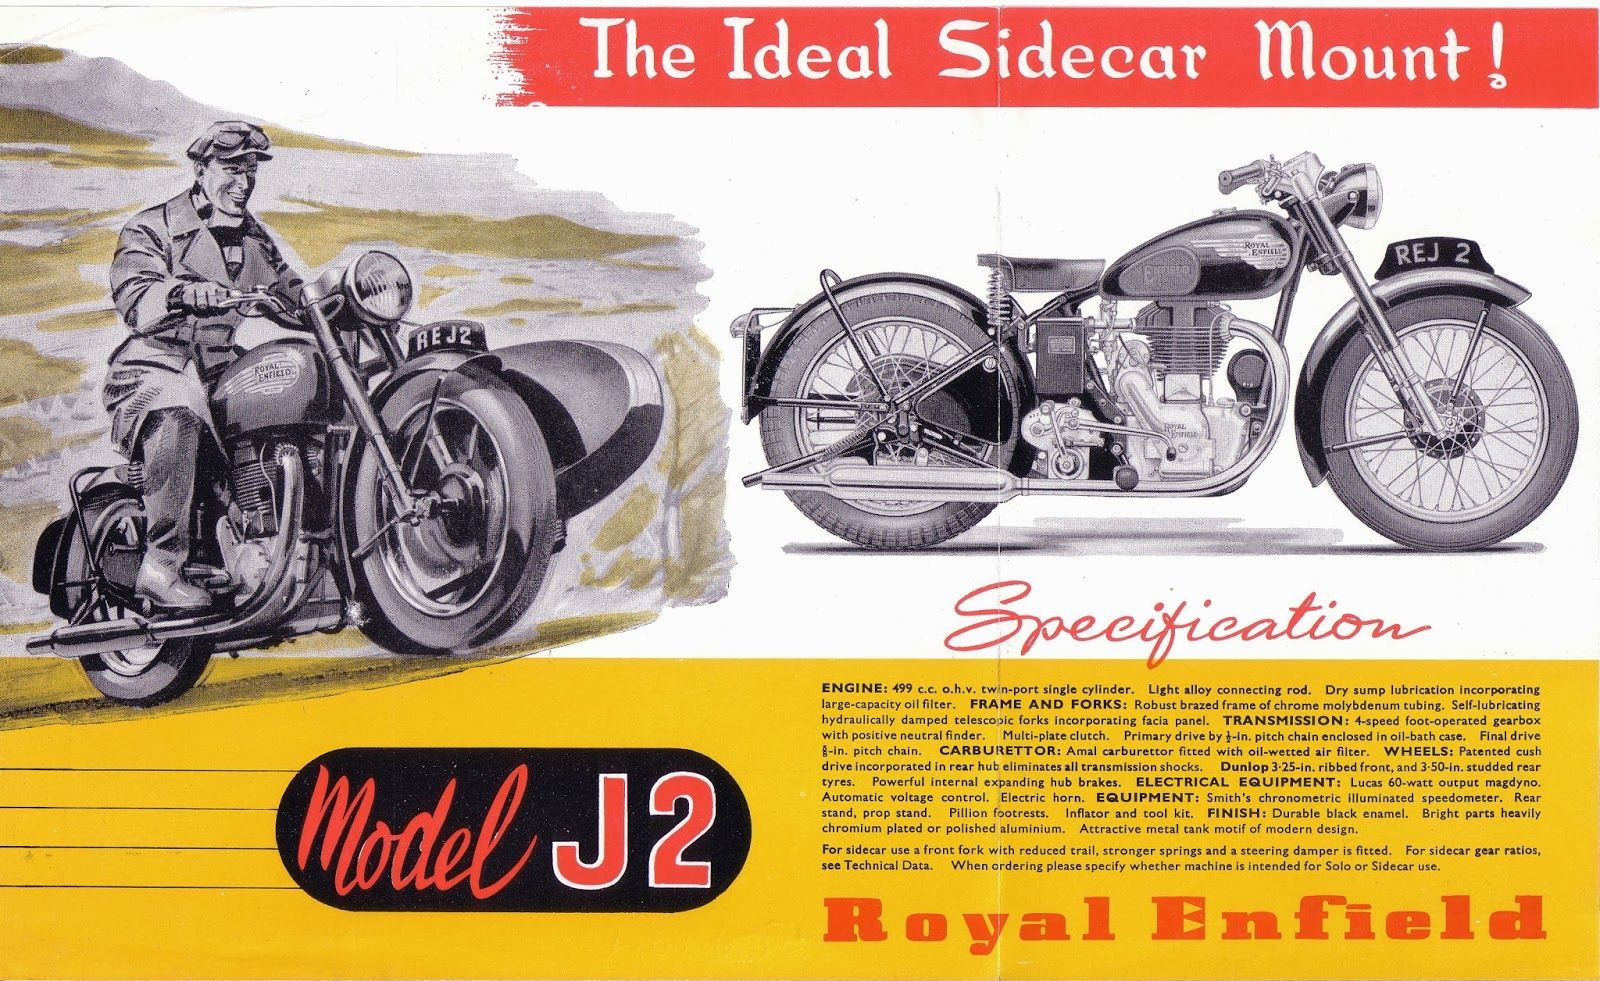 Red Devil Motors: Royal Enfield J2 1954 brochure